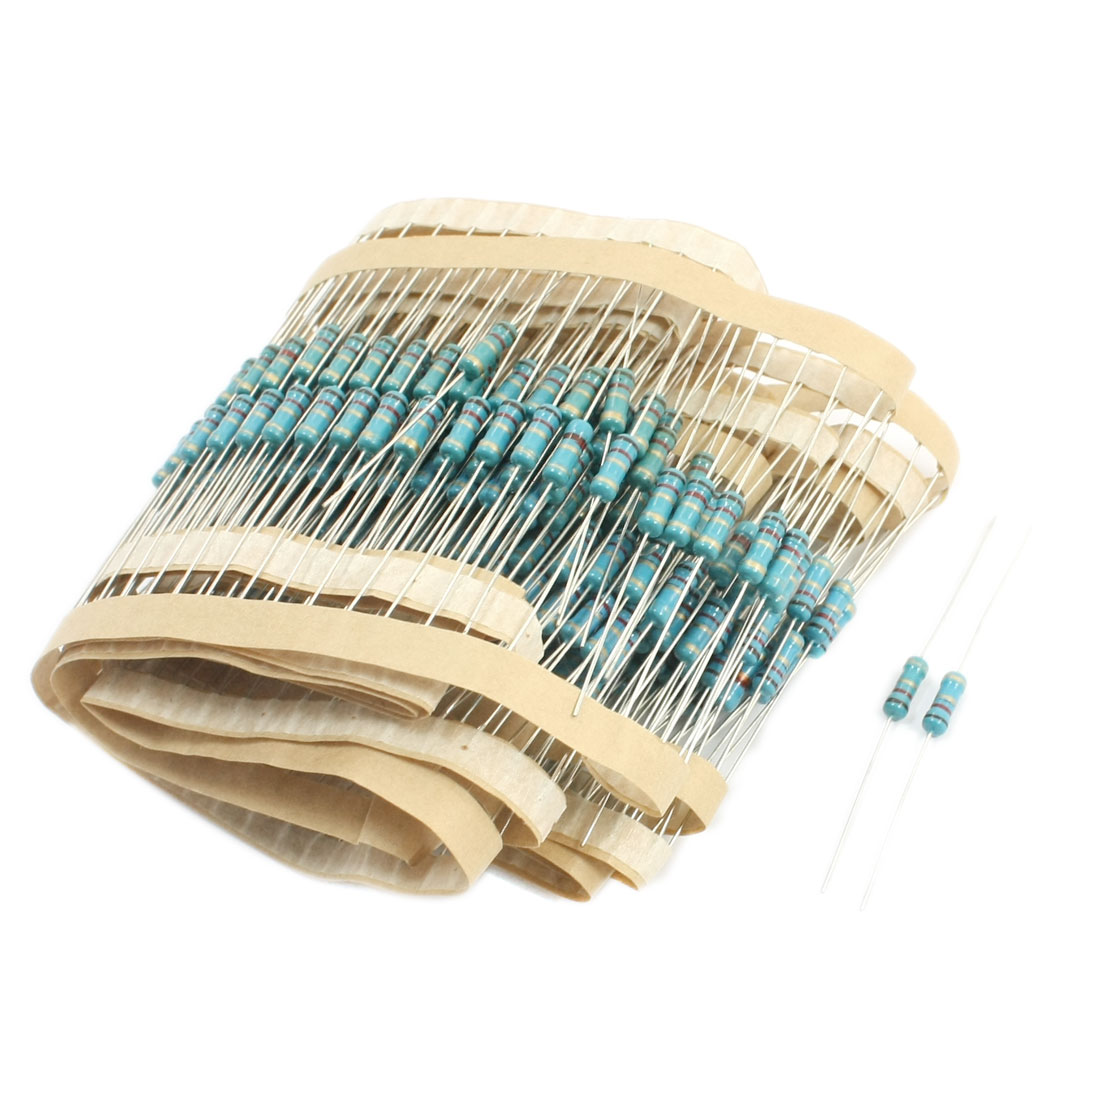 1.2 Ohm 0.5W Power 5% Tolerance Axial Lead Type Through Hole Mounting 4 Color Ring Carbon Film Fixed Resistors 280 Pcs